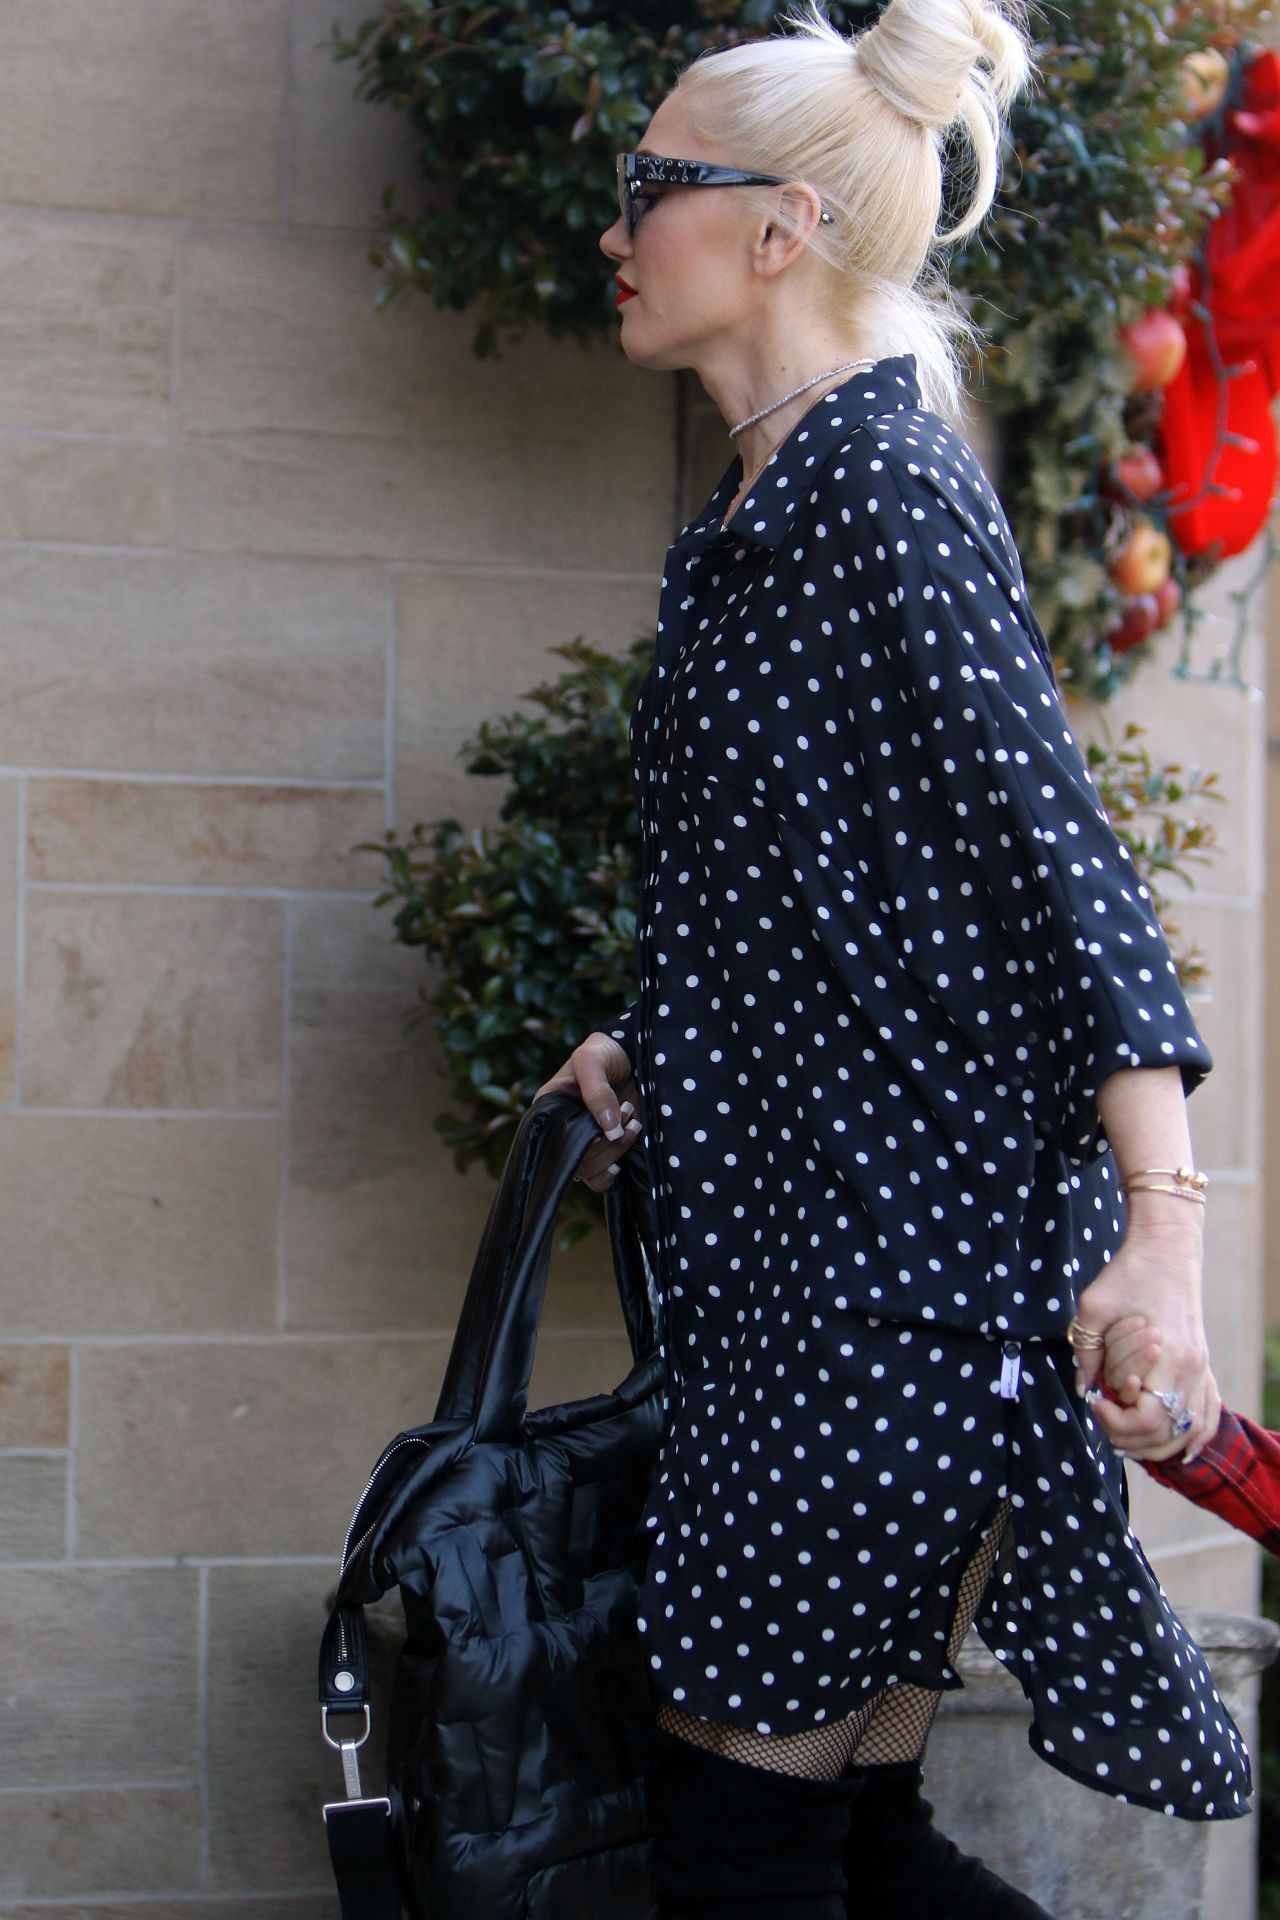 Gwen Stefani in Casual Outfit Arriving to Church in LA